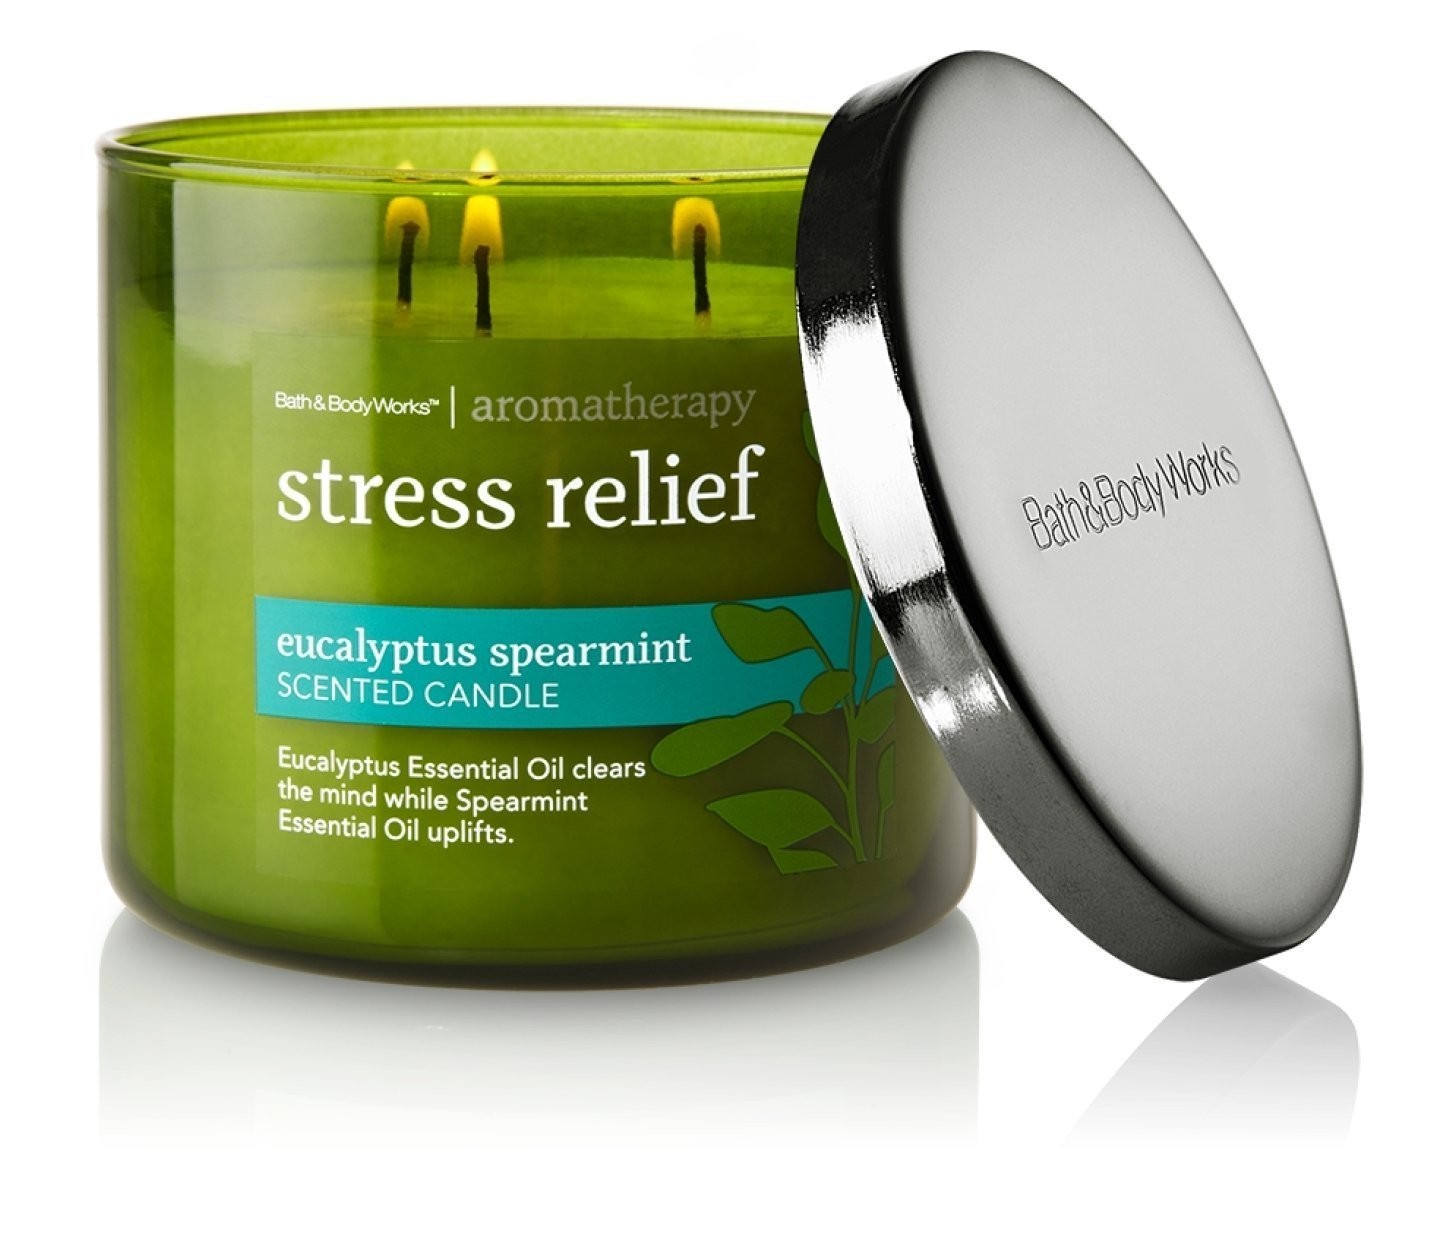 Aromatherapy Stress Relief - Eucalyptus Spearmint Scented Candle